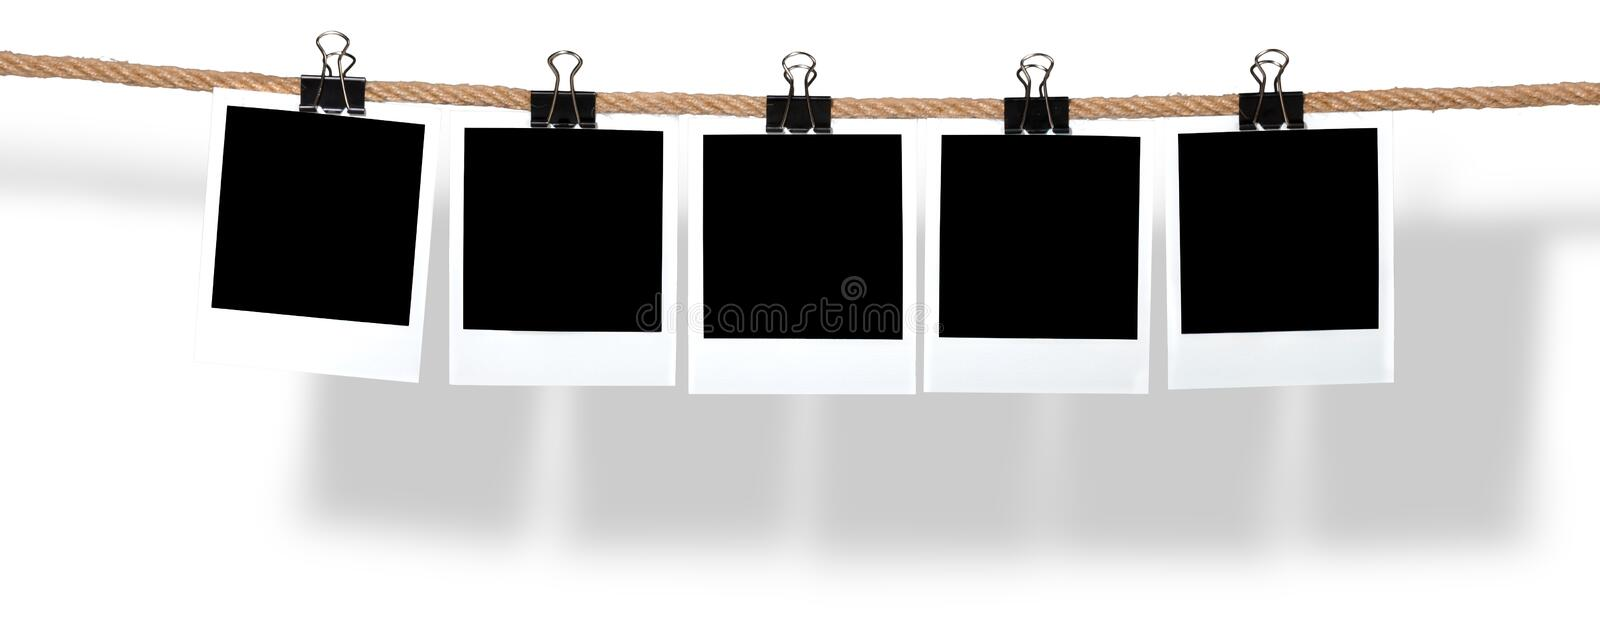 Blank Polaroids Hanging from a Rope stock image